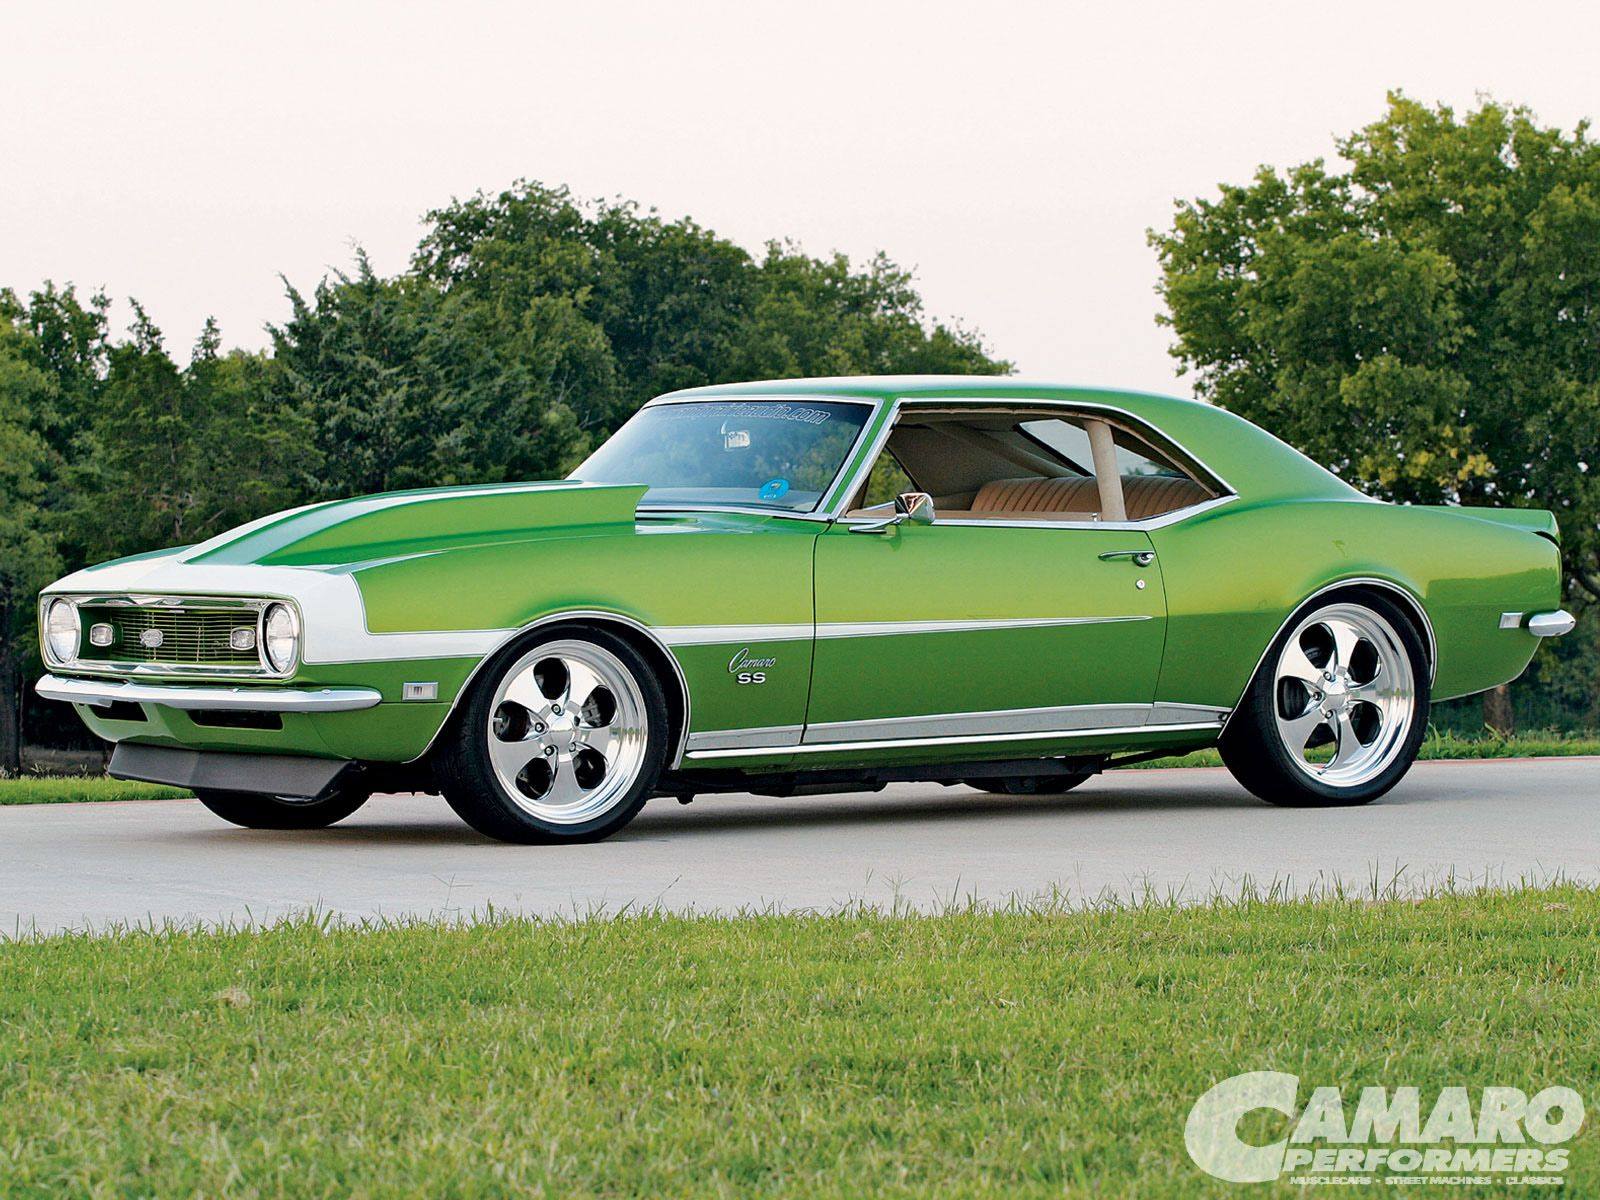 camp-0907-01+1968-chevy-camaro-ss+side-view.jpg 1,600×1,200 pixels